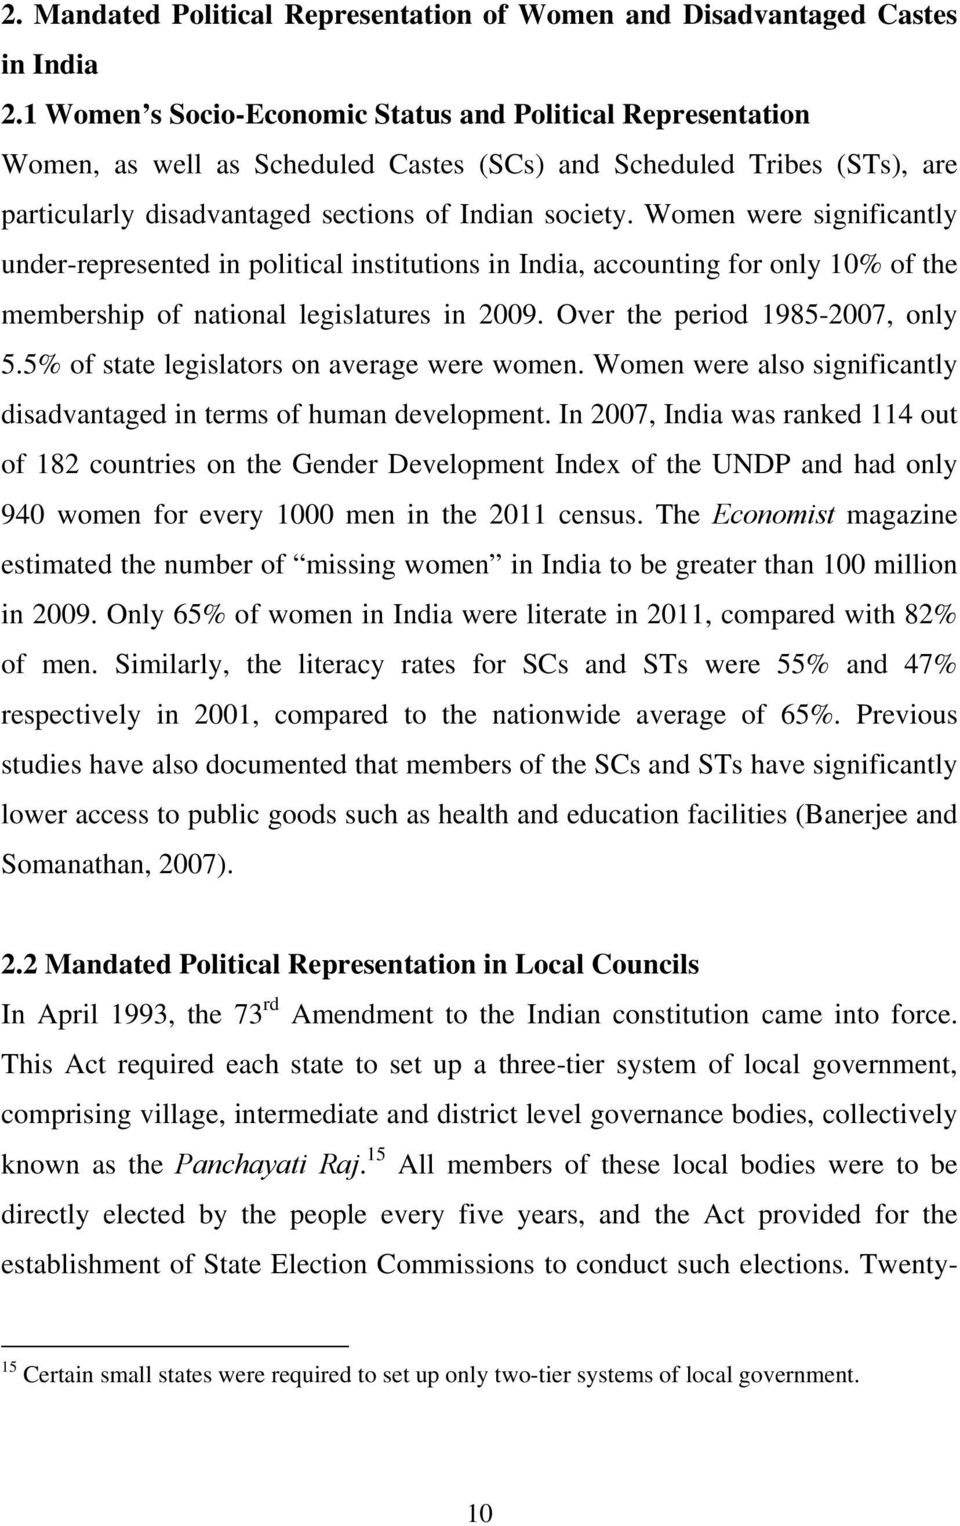 Women were significantly under-represented in political institutions in India, accounting for only 10% of the membership of national legislatures in 2009. Over the period 1985-2007, only 5.